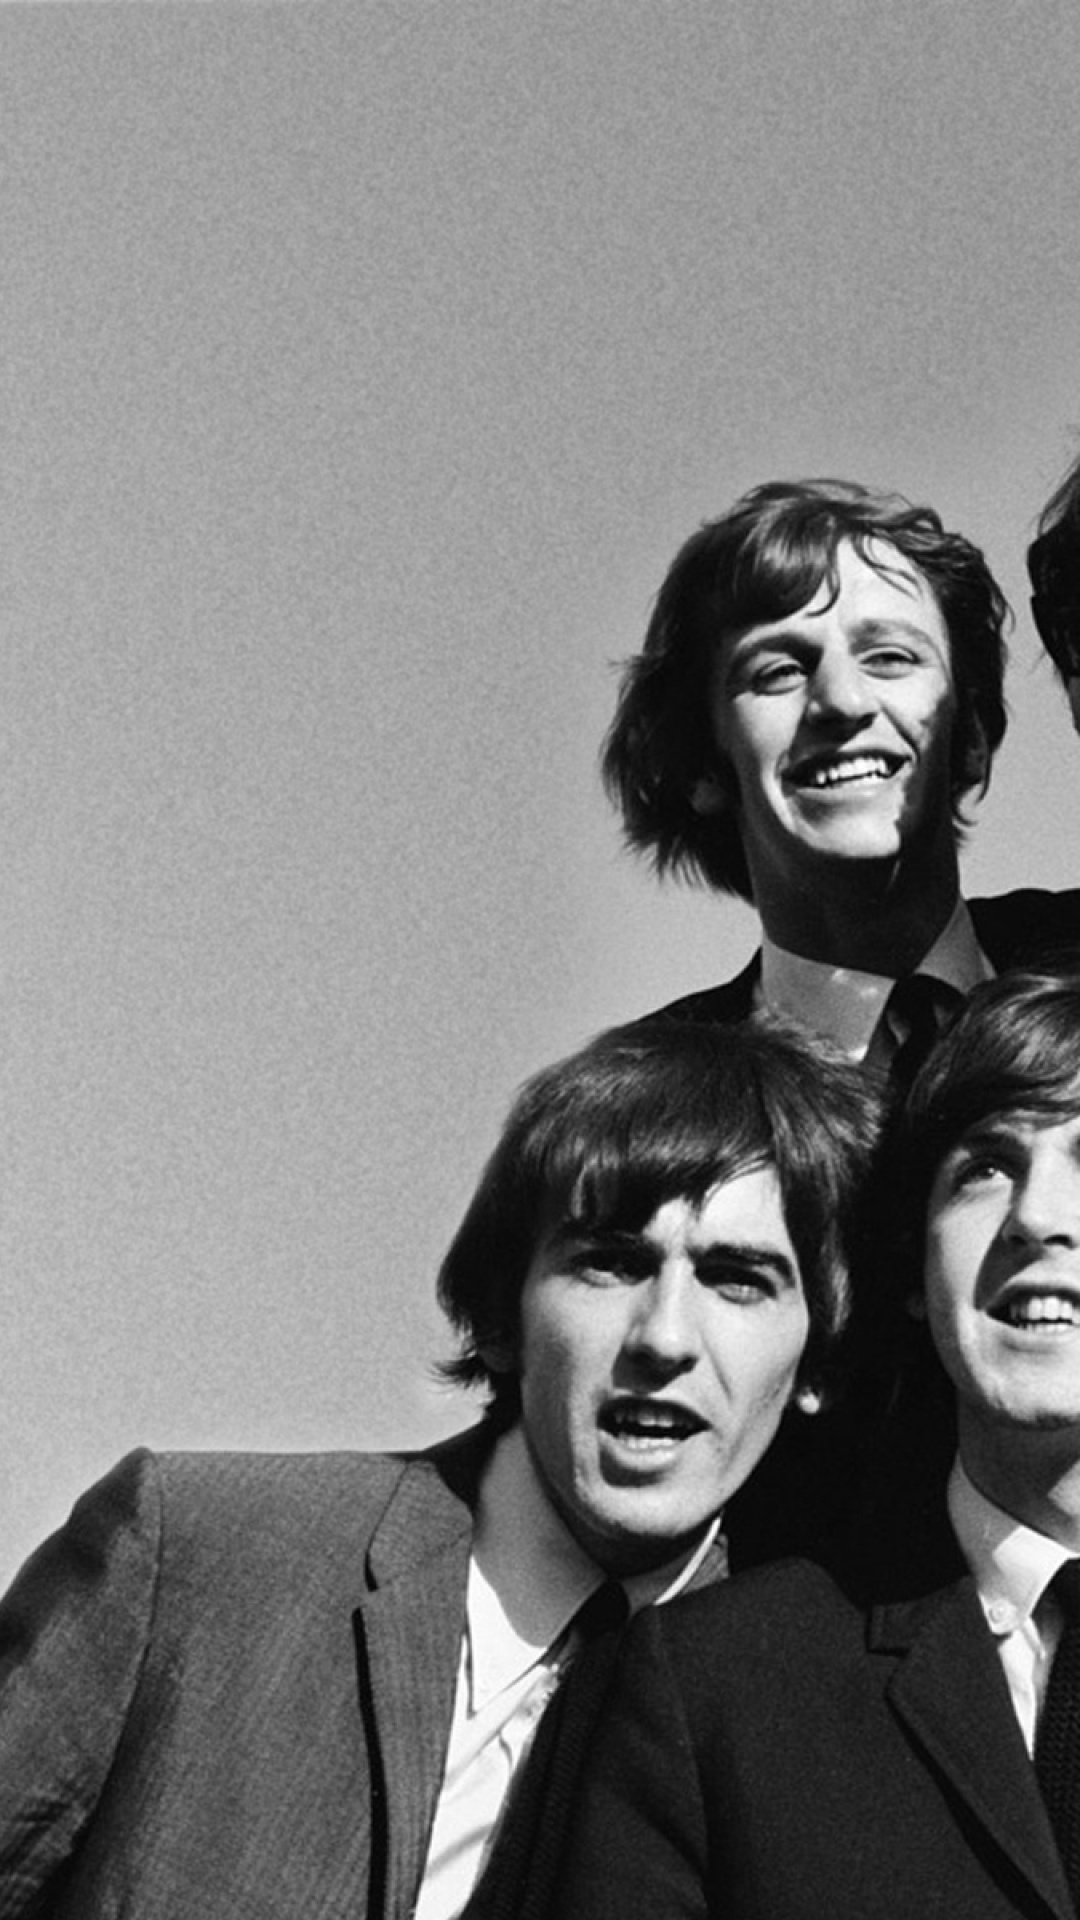 Download The Beatles Phone Wallpaper Gallery